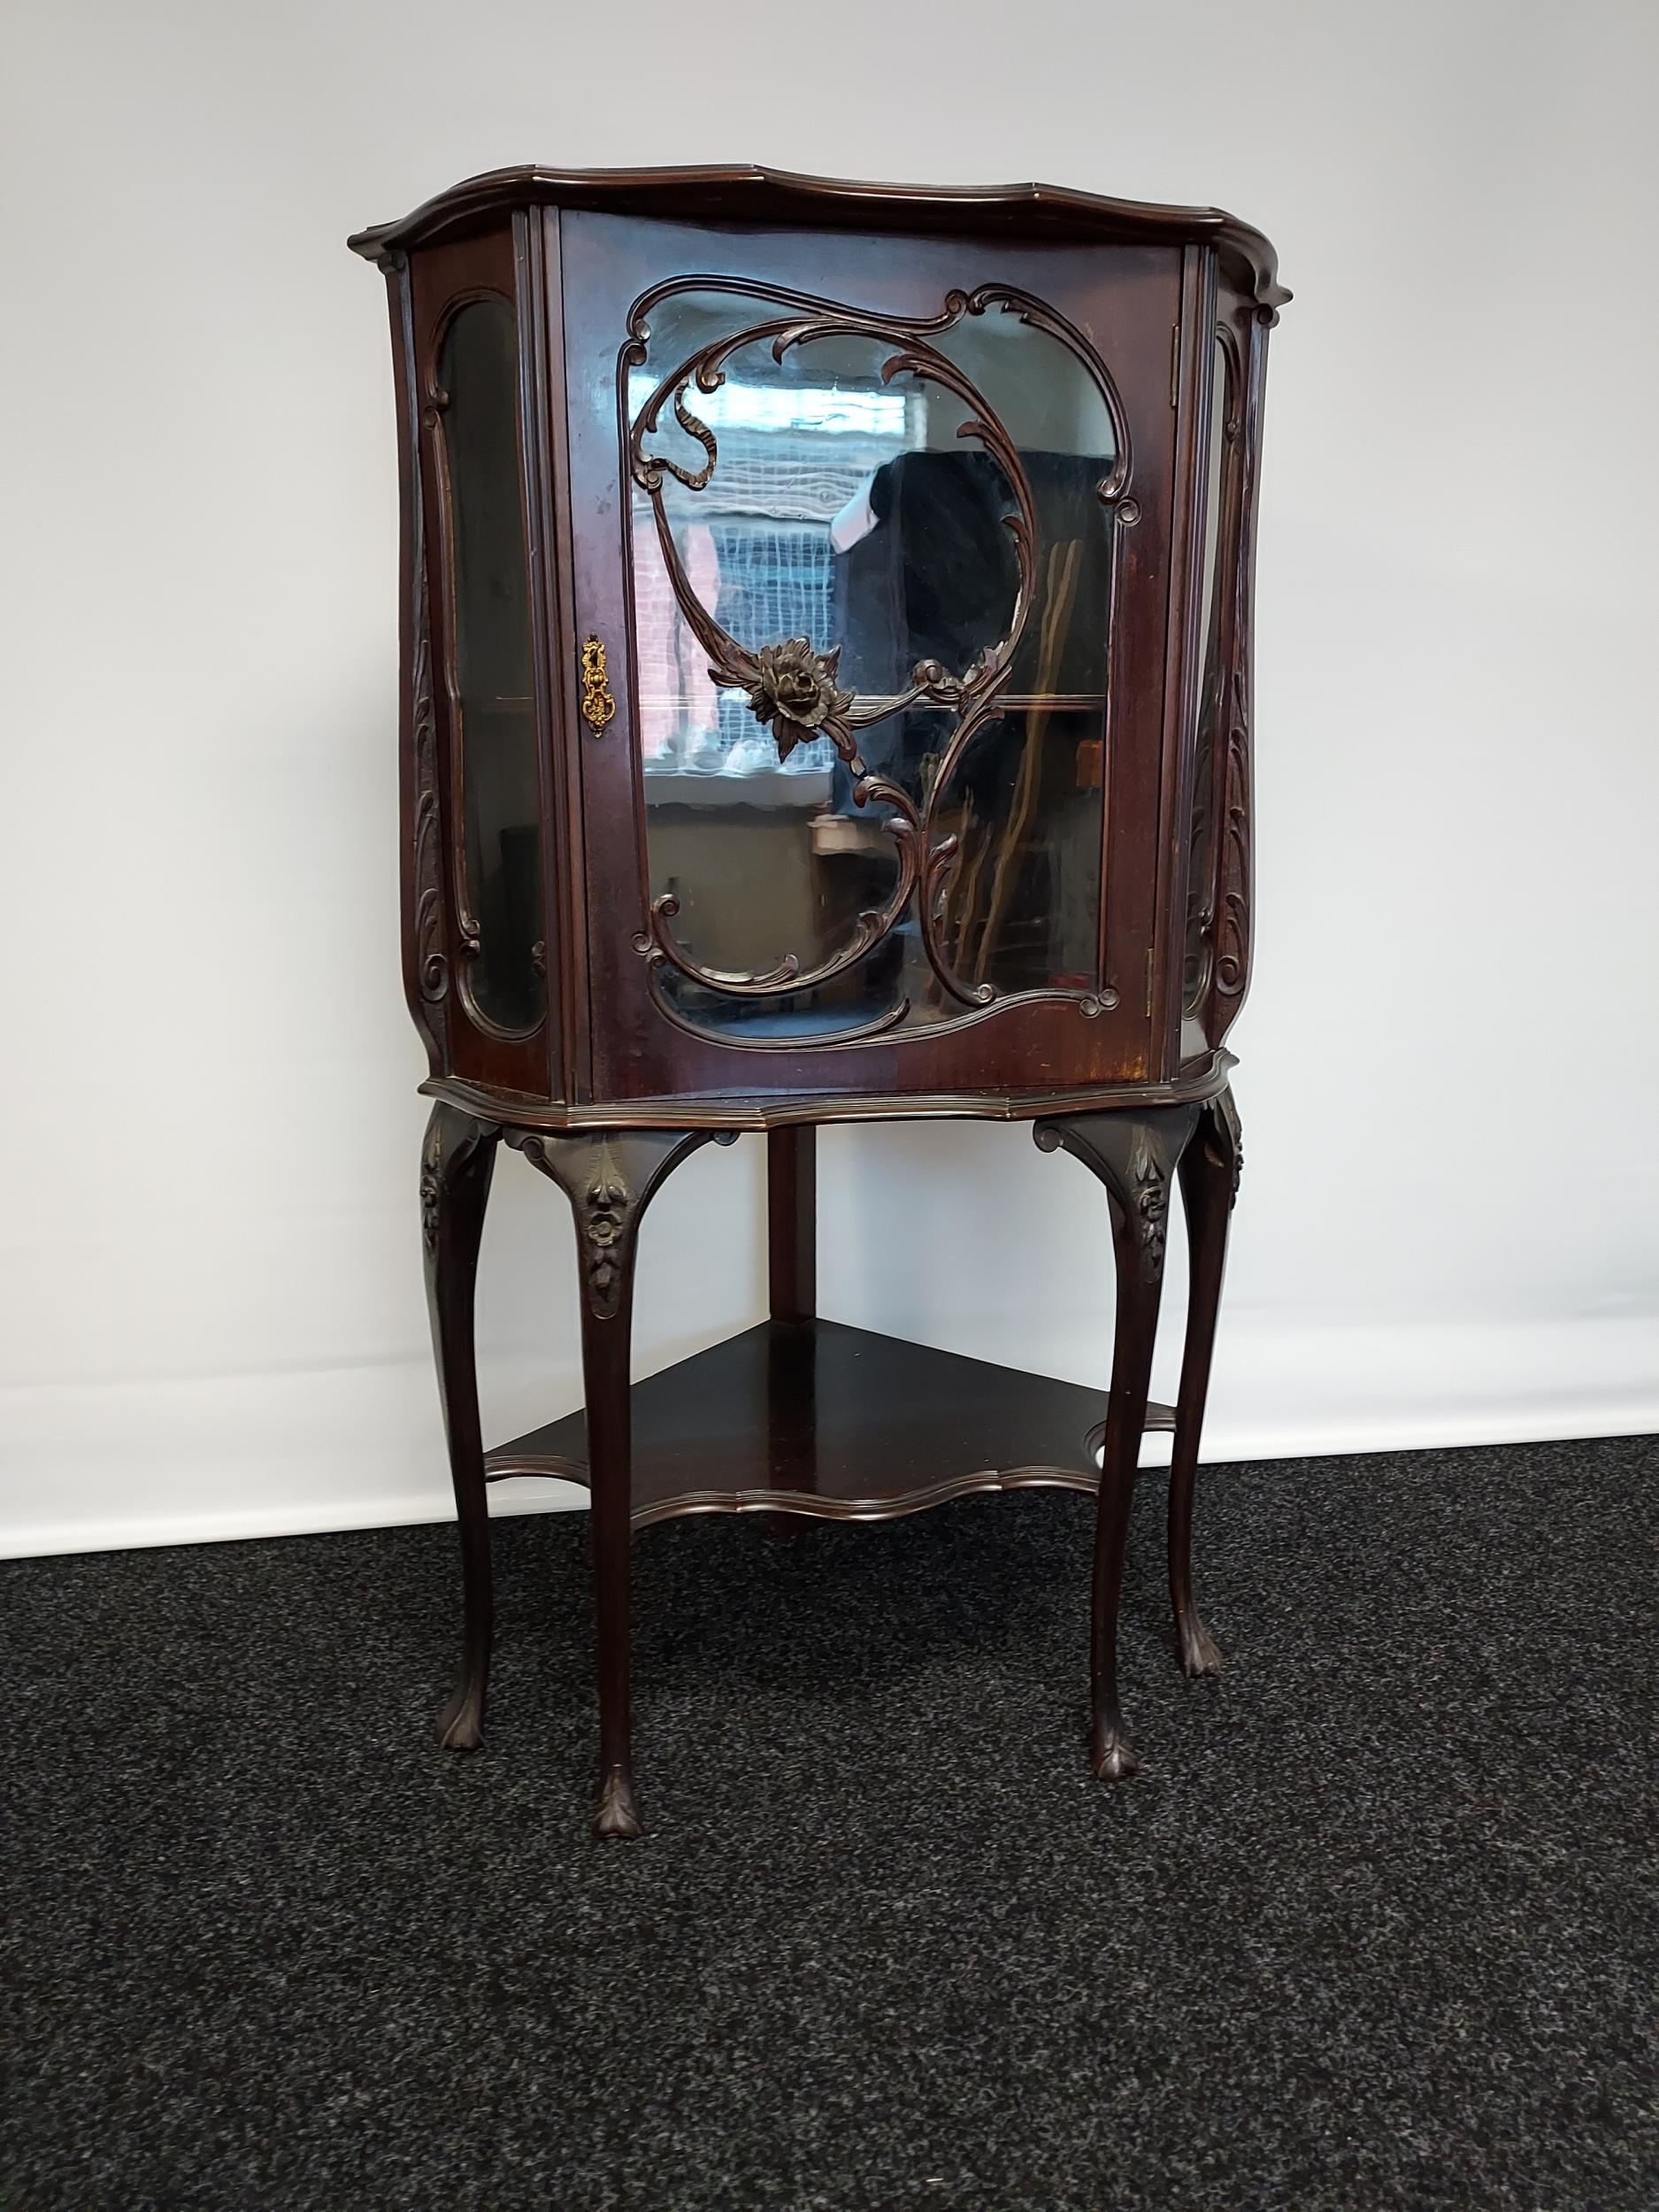 An antique Chippendale style ornate corner display cabinet. Comes with a key. [119x50x50cm] - Image 2 of 5